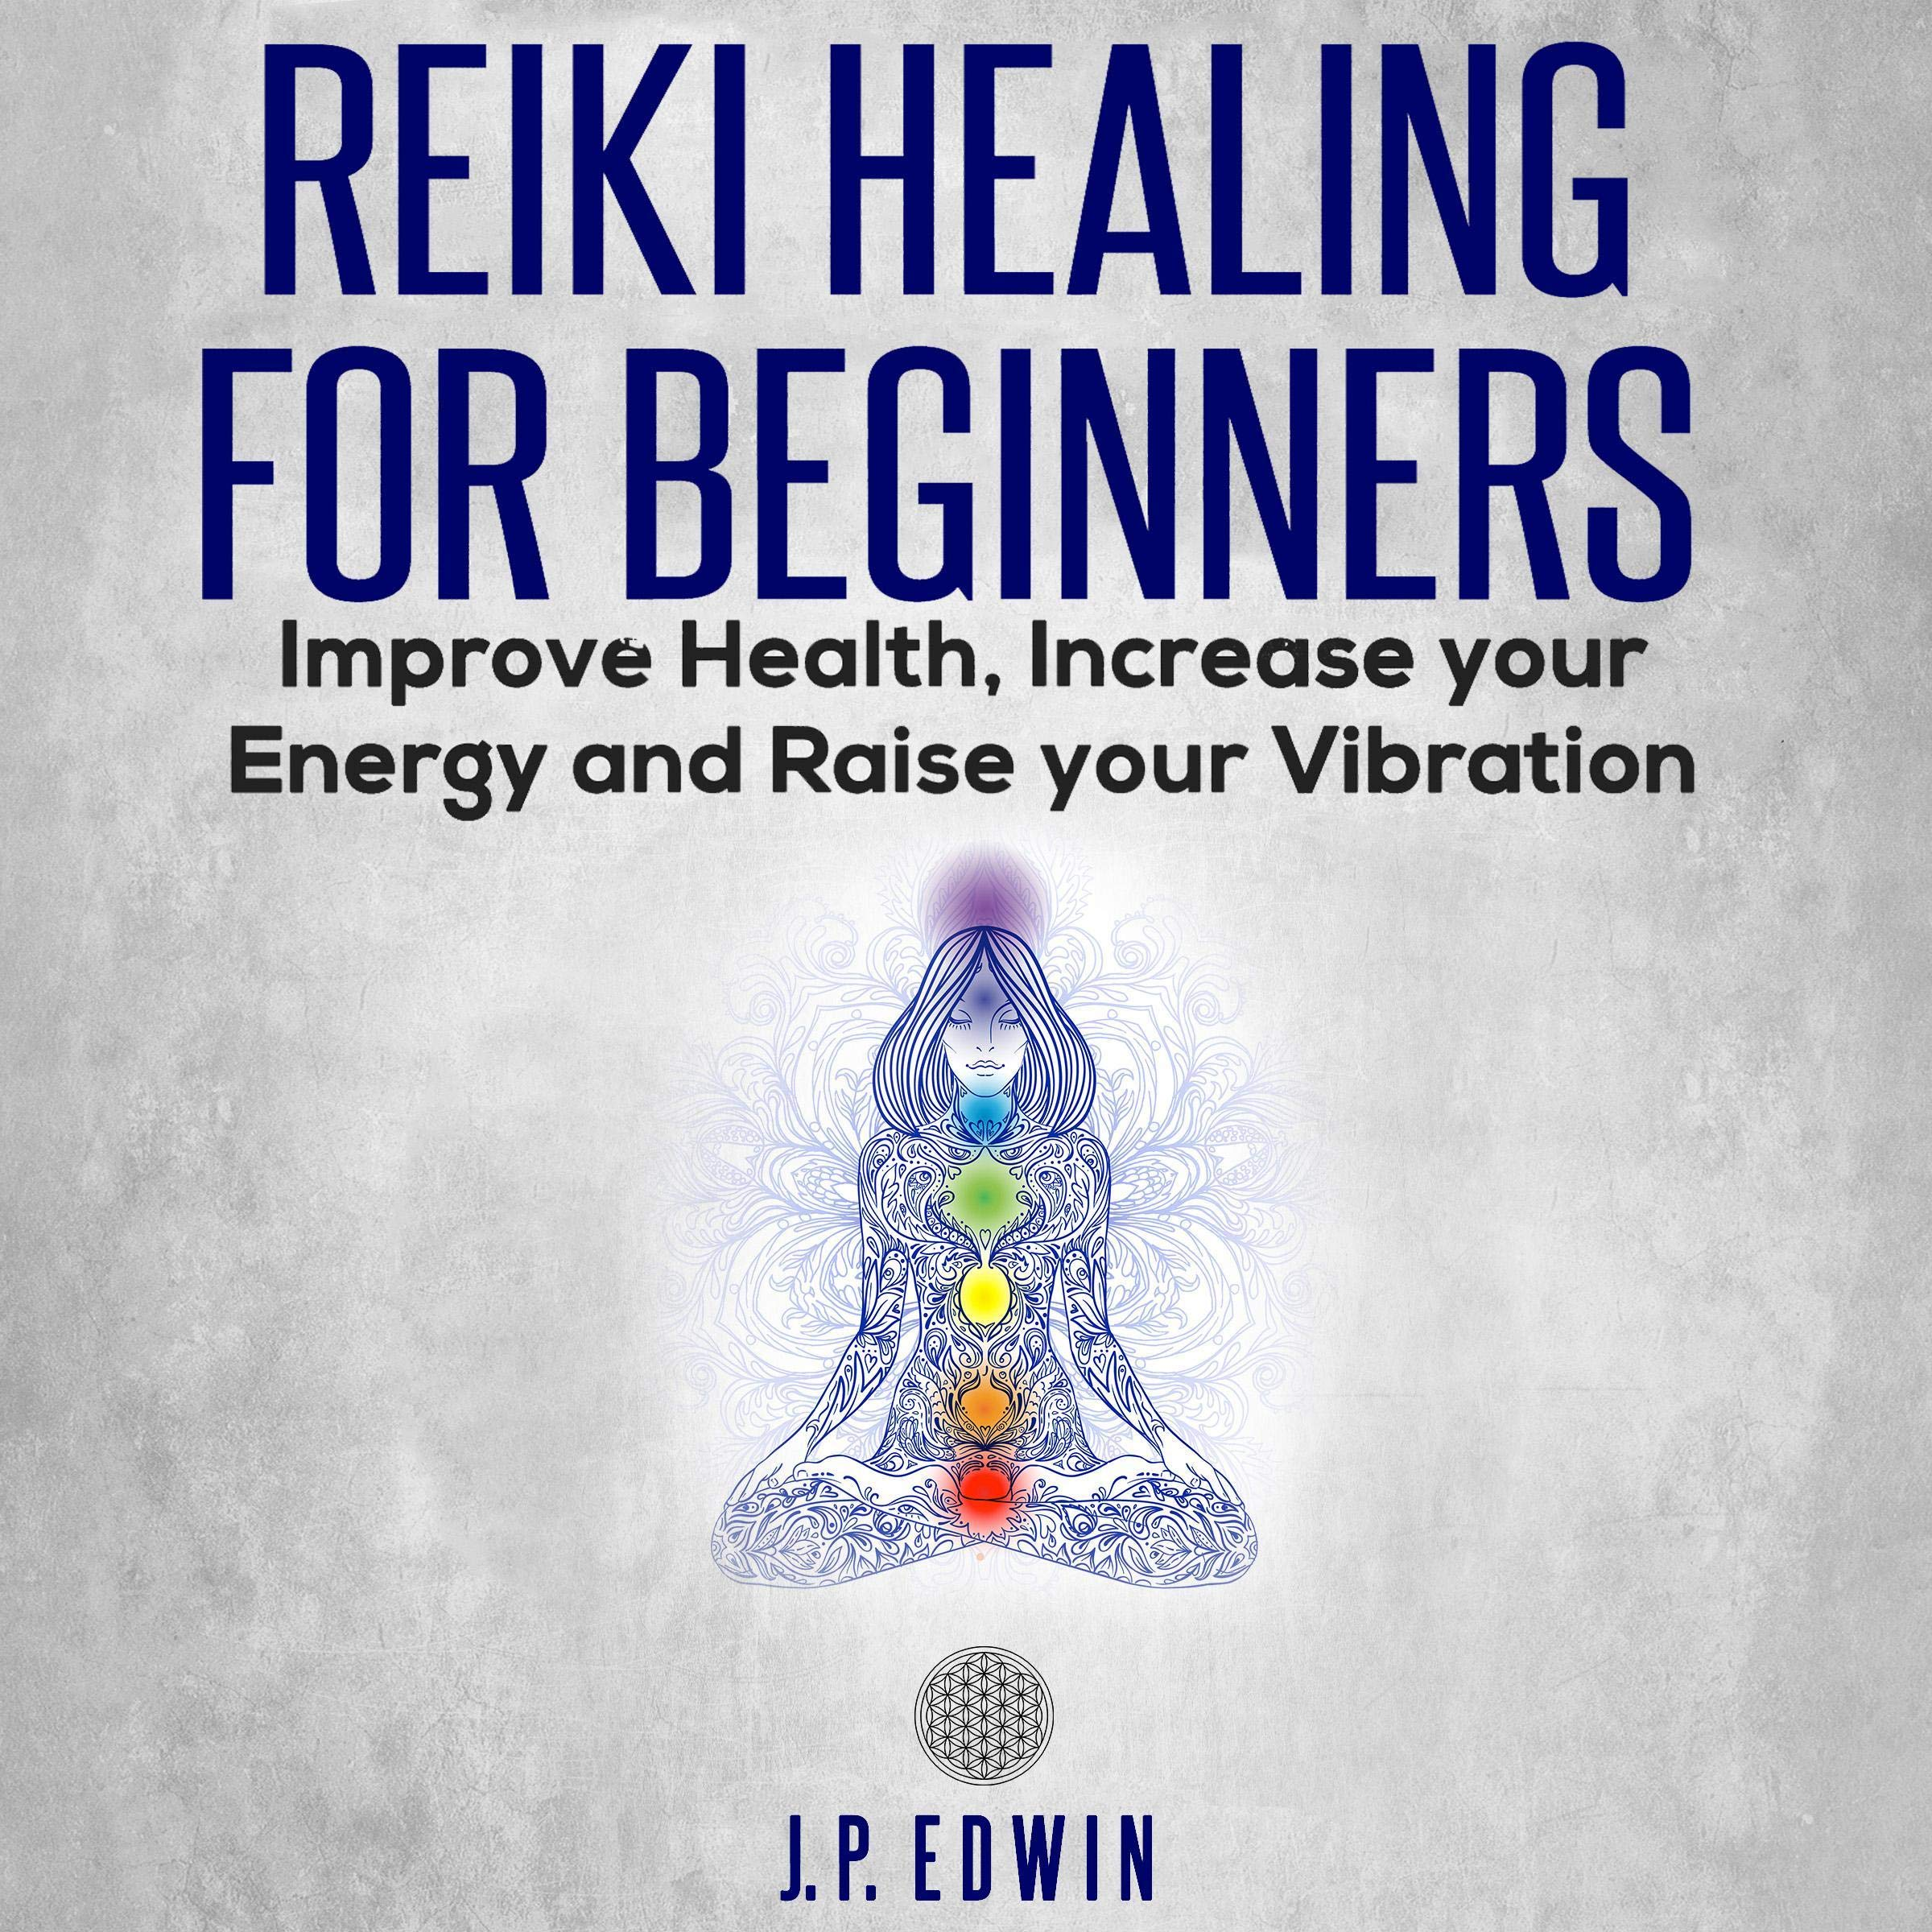 Reiki Healing for Beginners: Improve Your Health Increase Your Energy and Raise Your Vibration